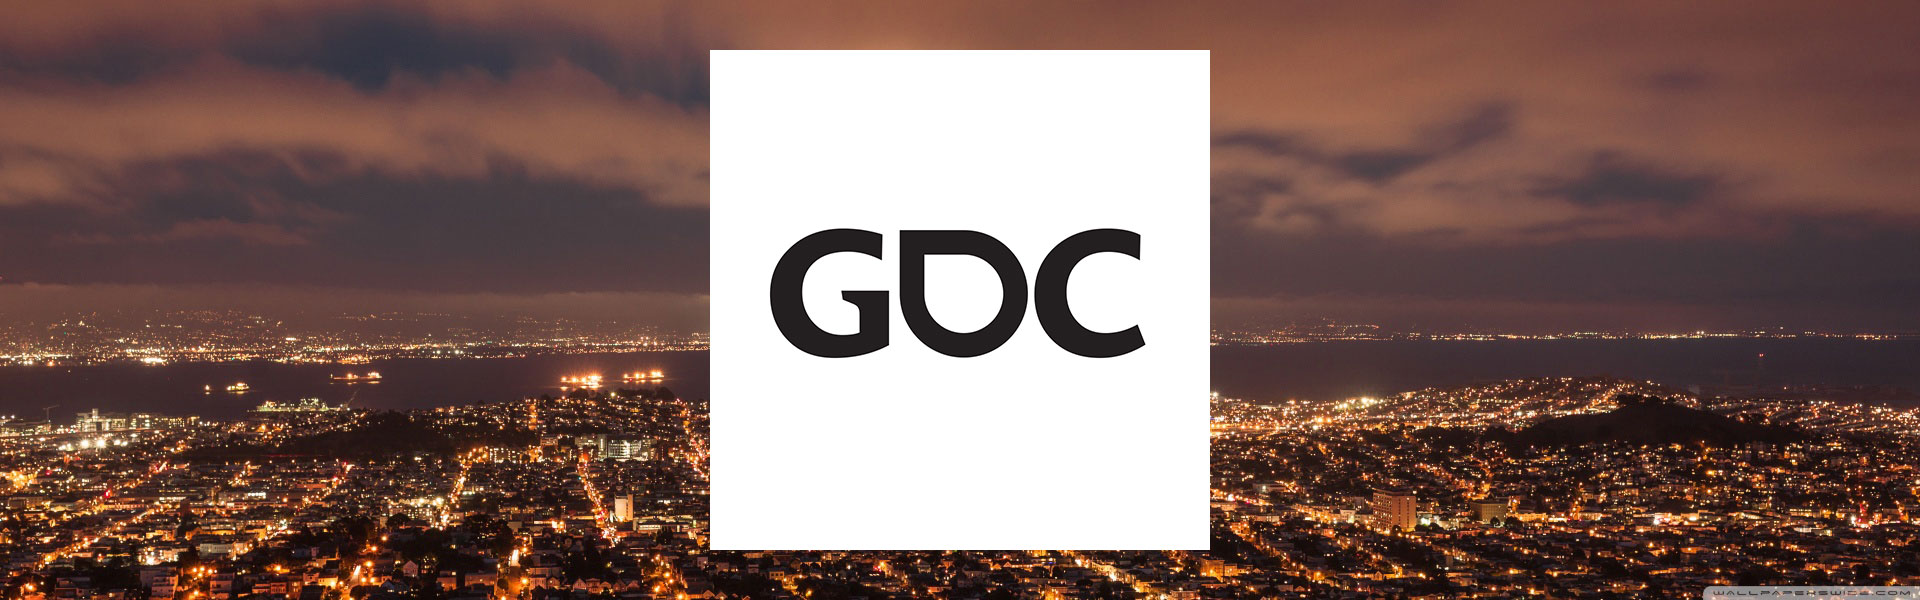 GDC 2019 event banner